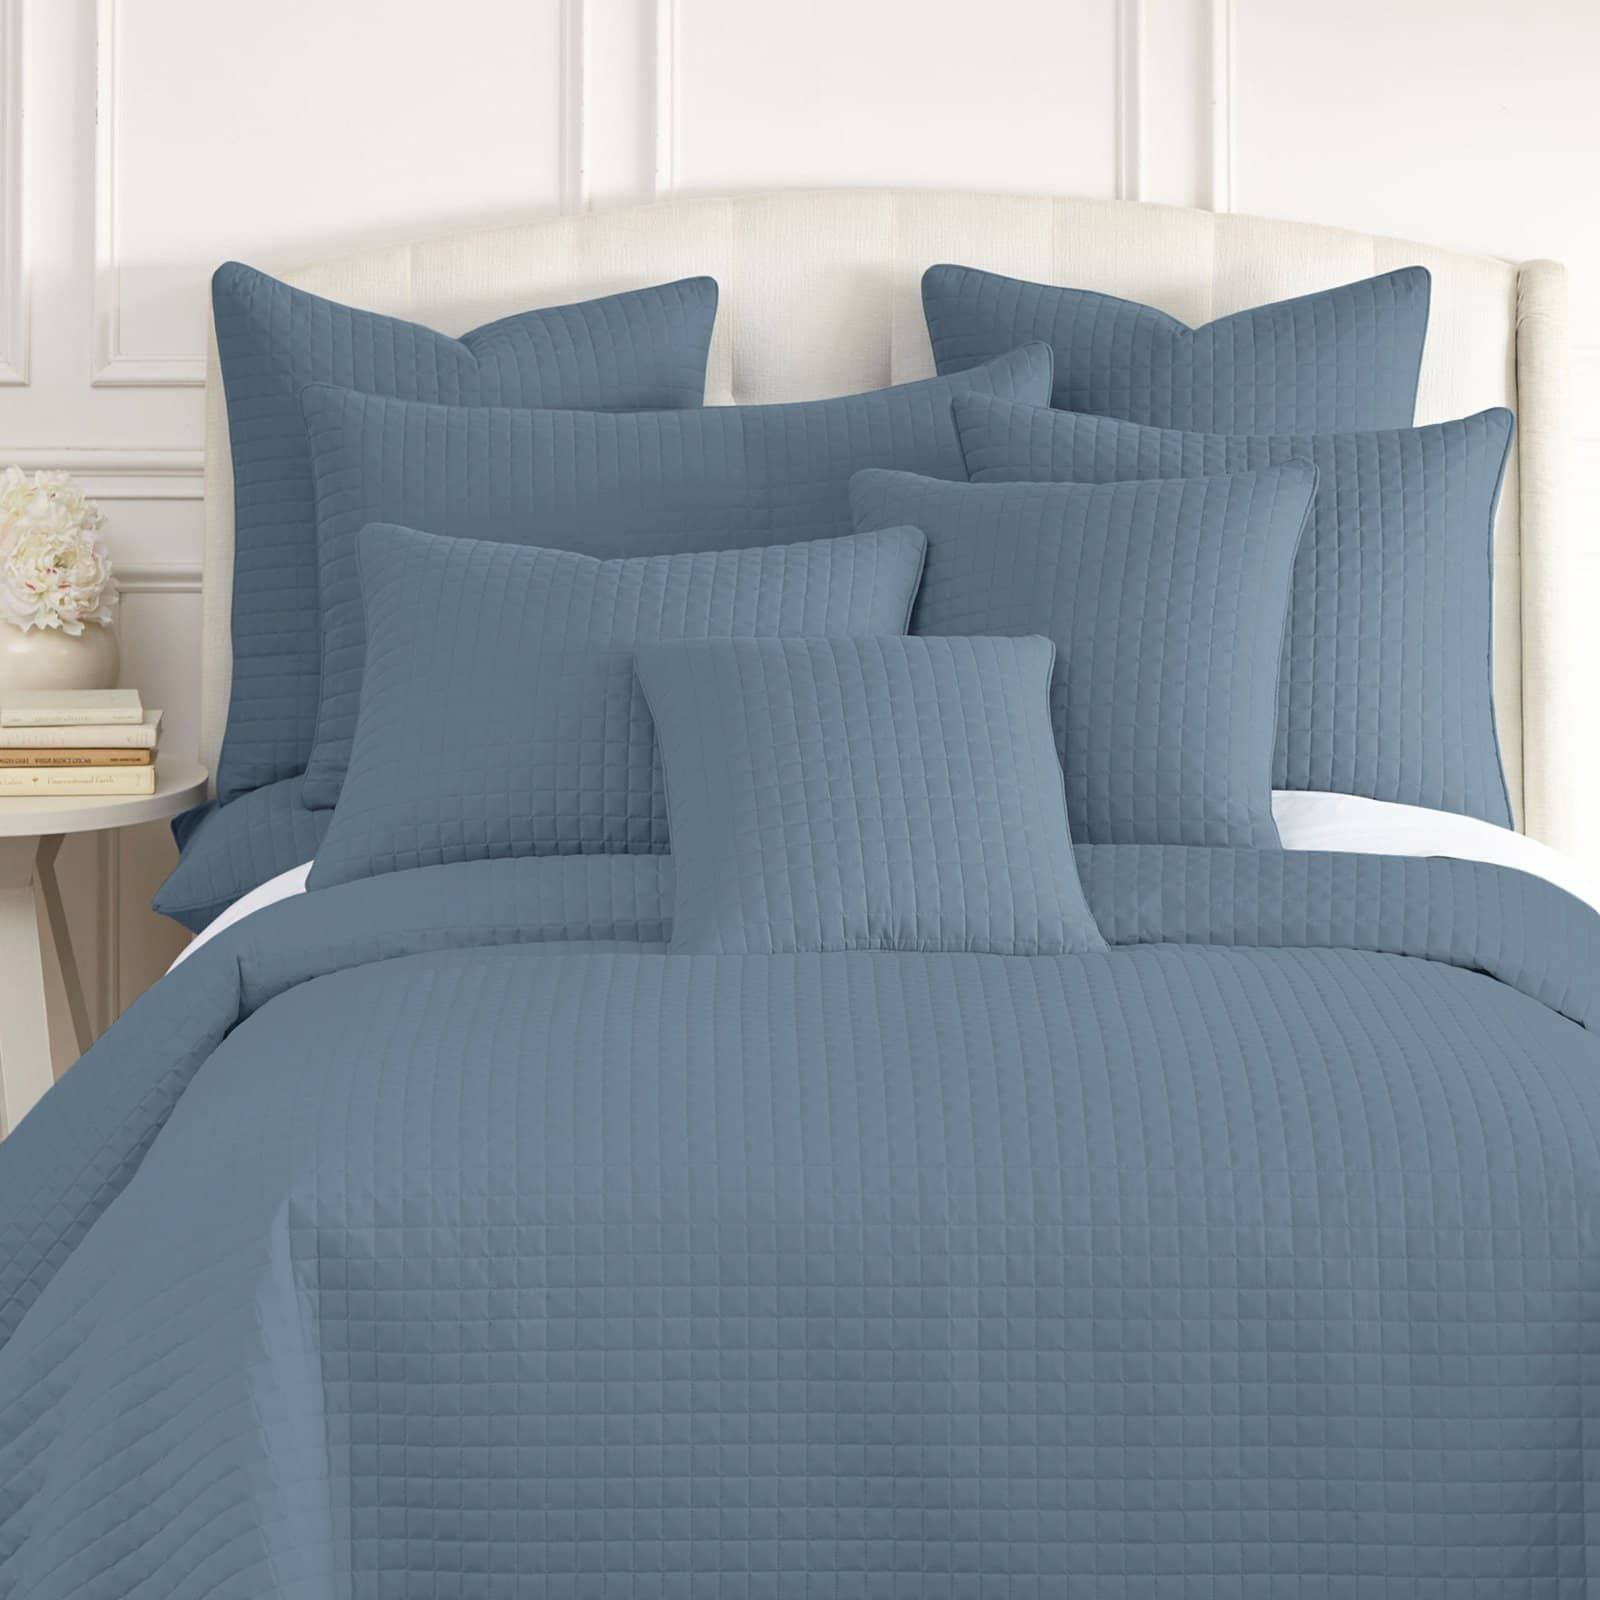 Beautiful Decorative Quilted Sham Covers Pillow Covers By Vilano Springs Southshore Fine Linens